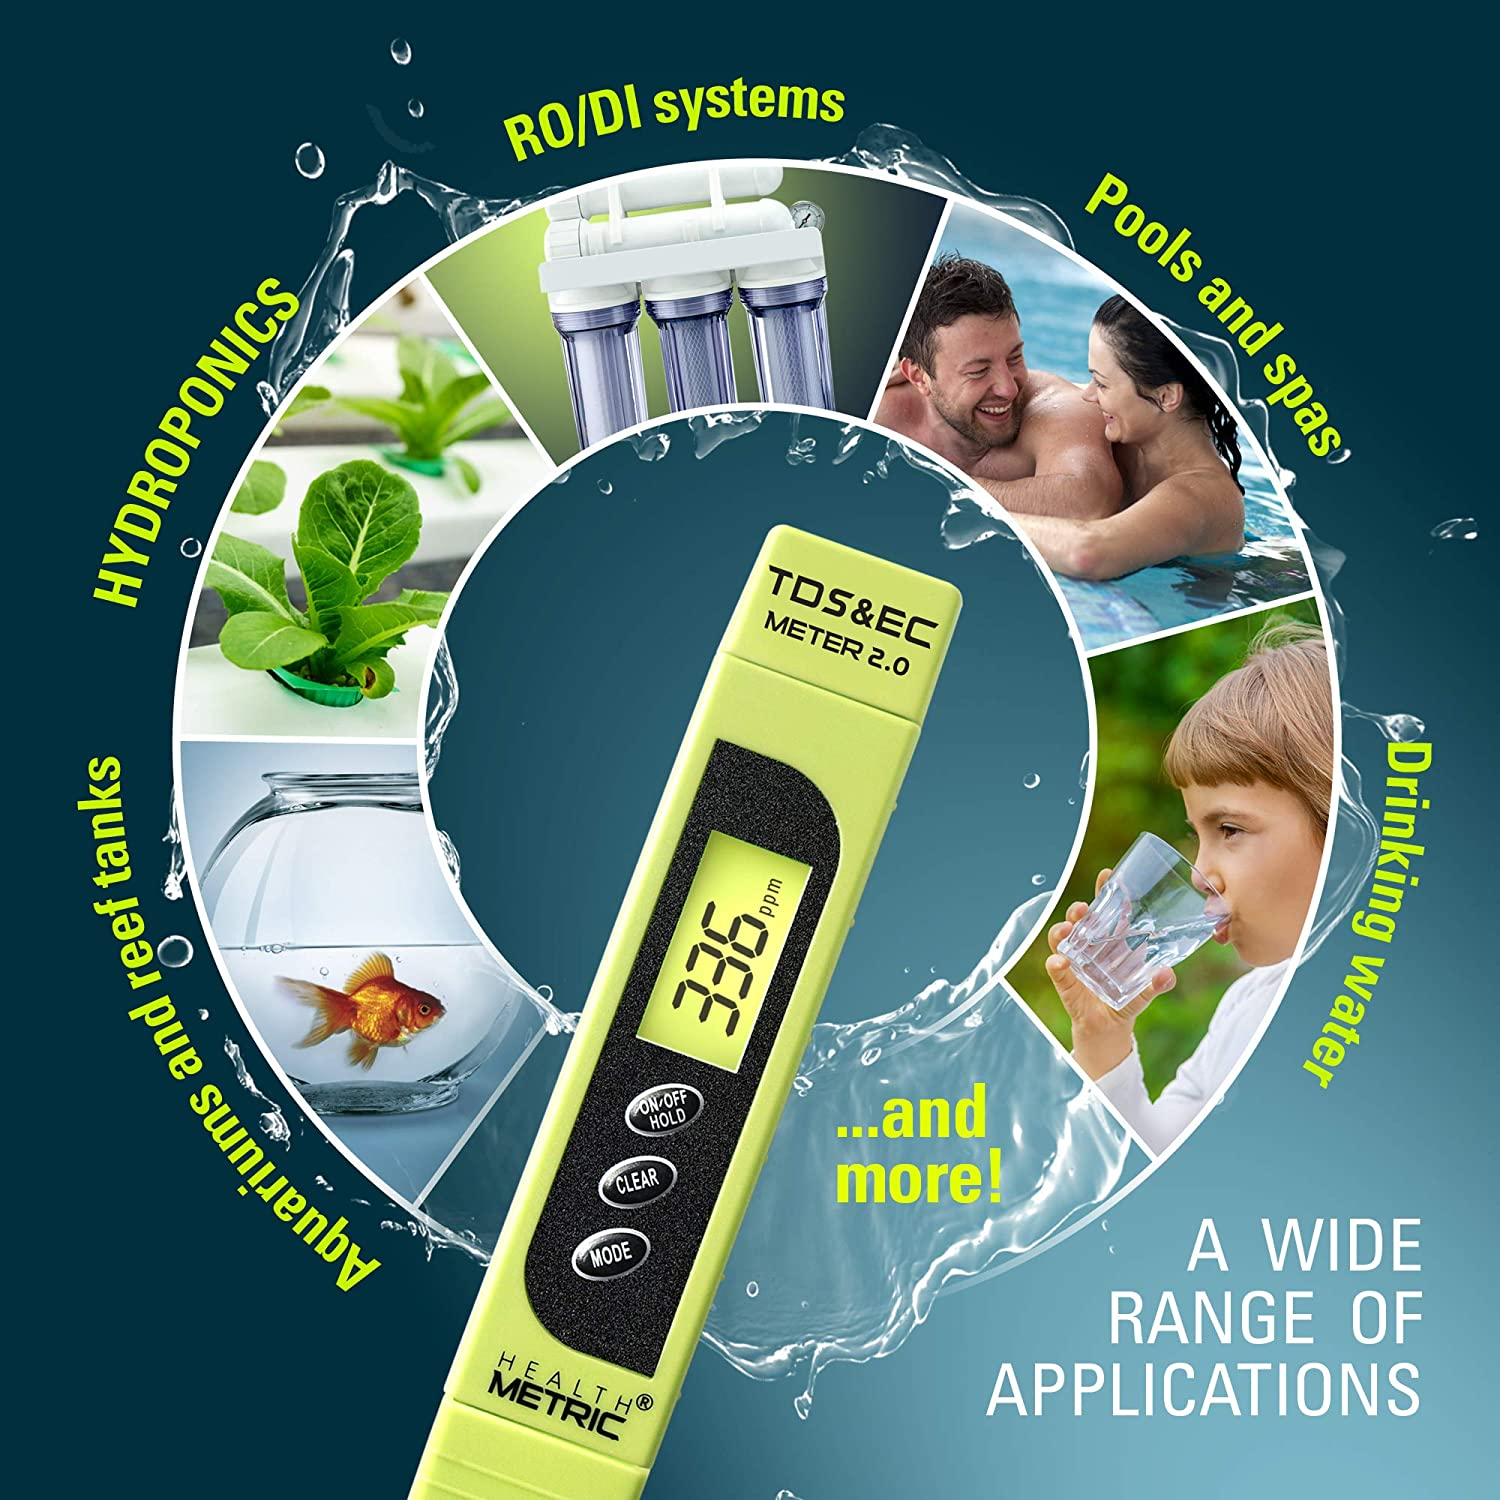 Digital LCD Meter Water Quality Tester for Drinking Swimming Pool with High Accuracy 0-9990 PPM Range